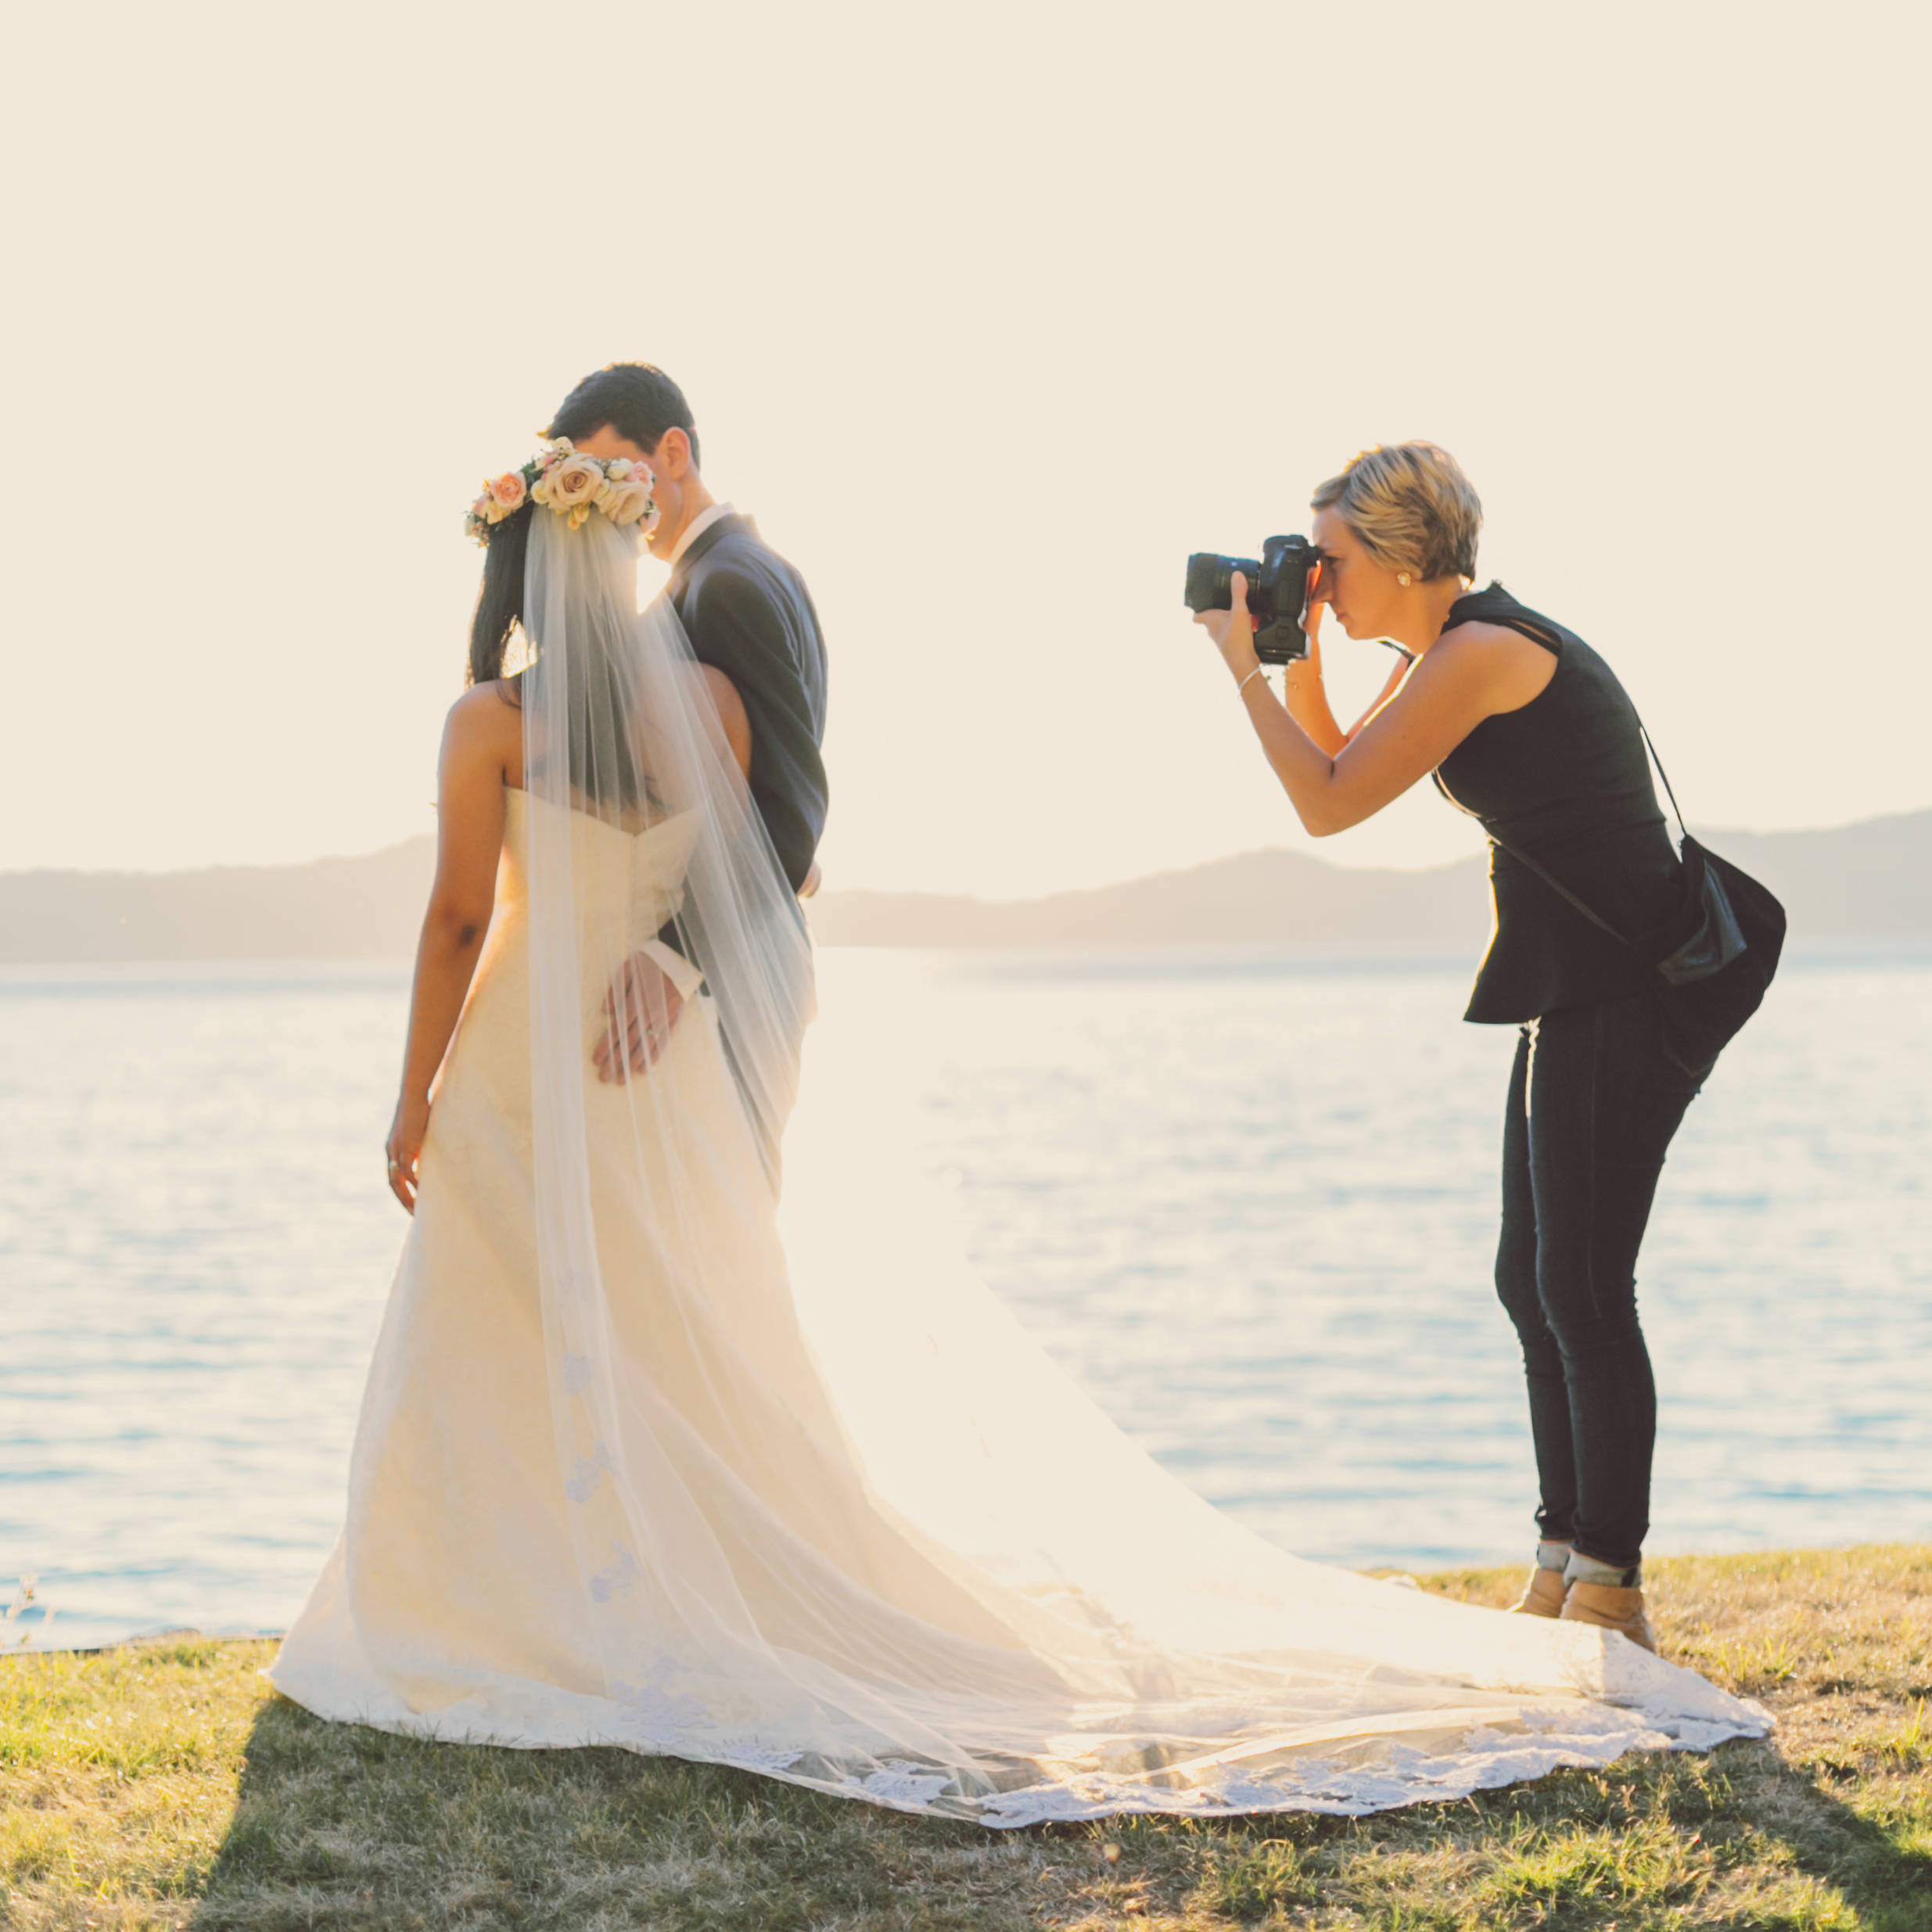 huffington post photographer of the month, jennifer picard photography